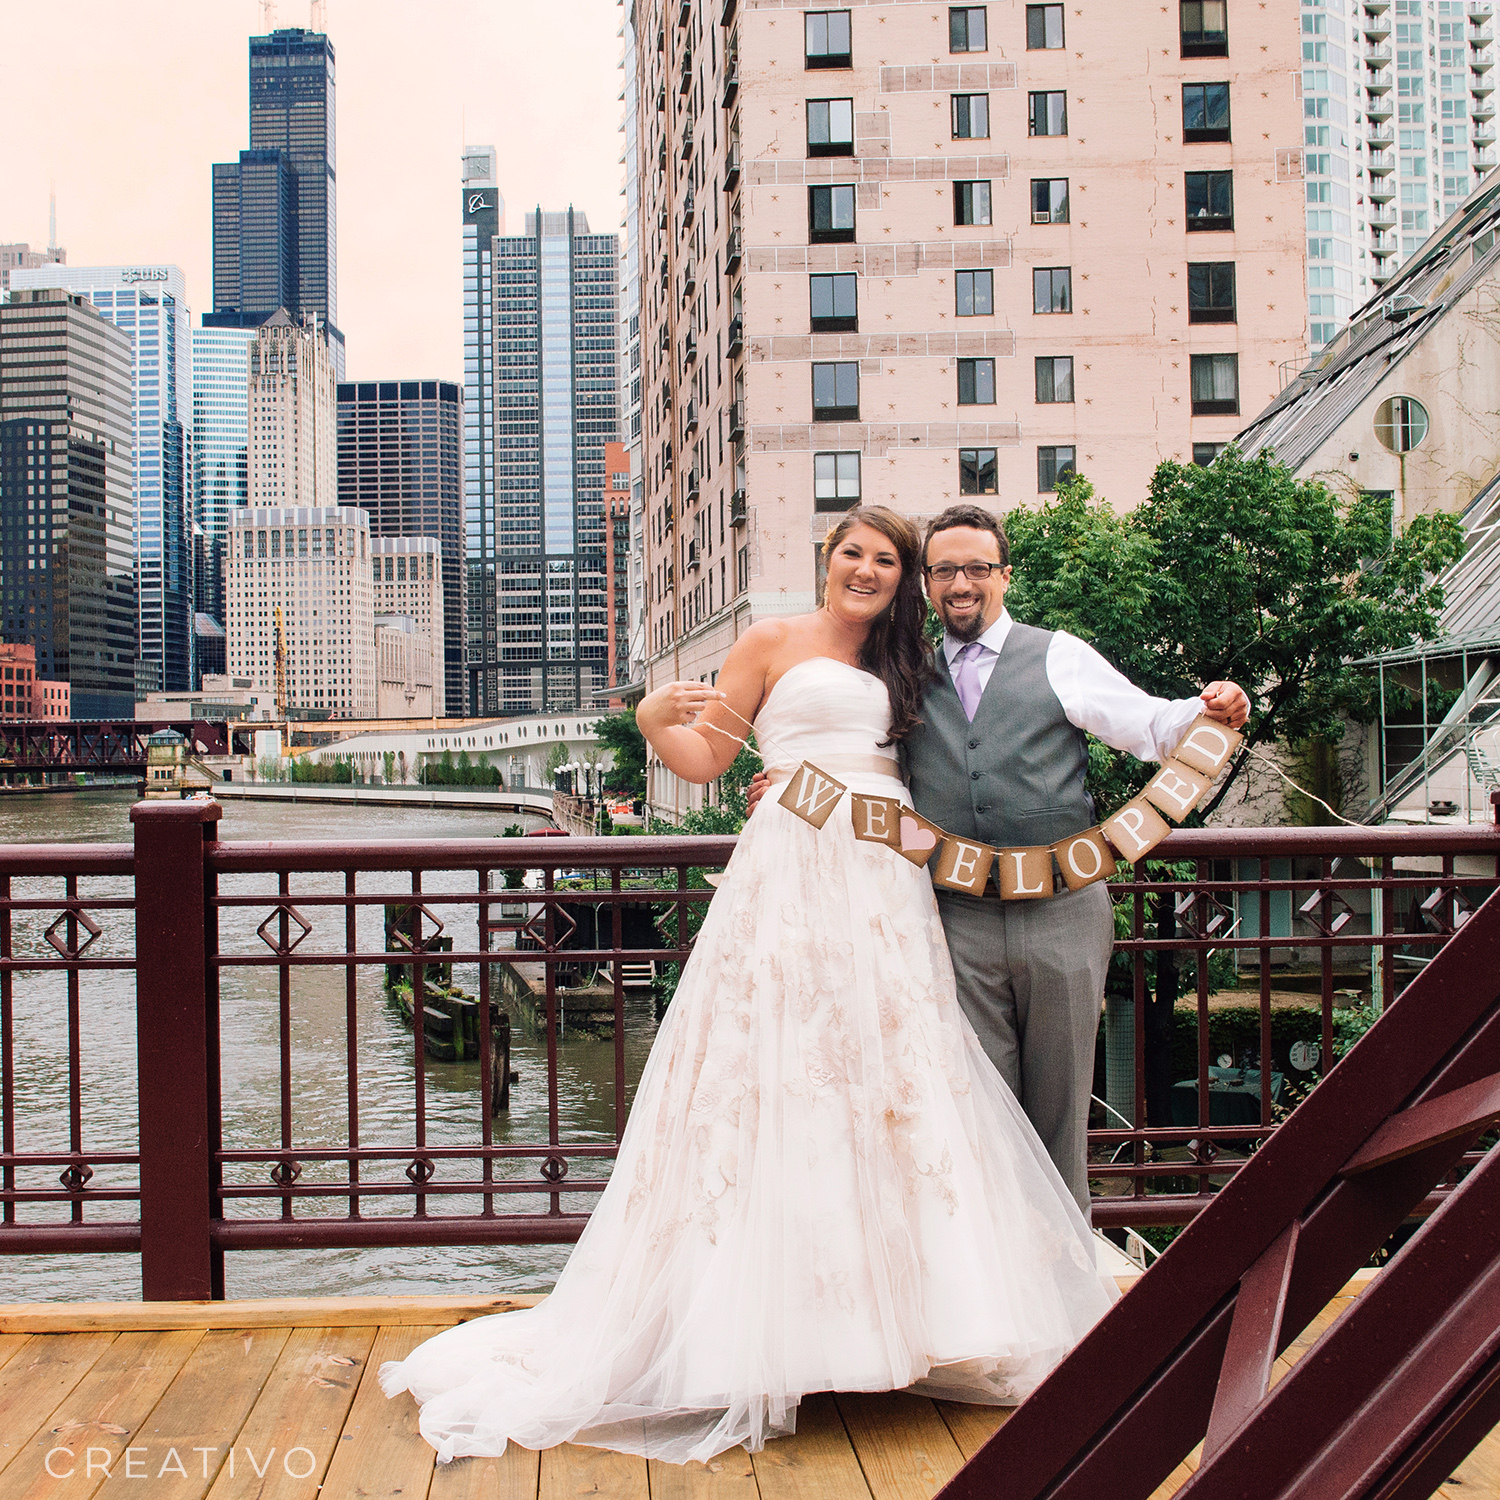 """8. Chicago elopement with a printed banner saying """"we eloped"""""""